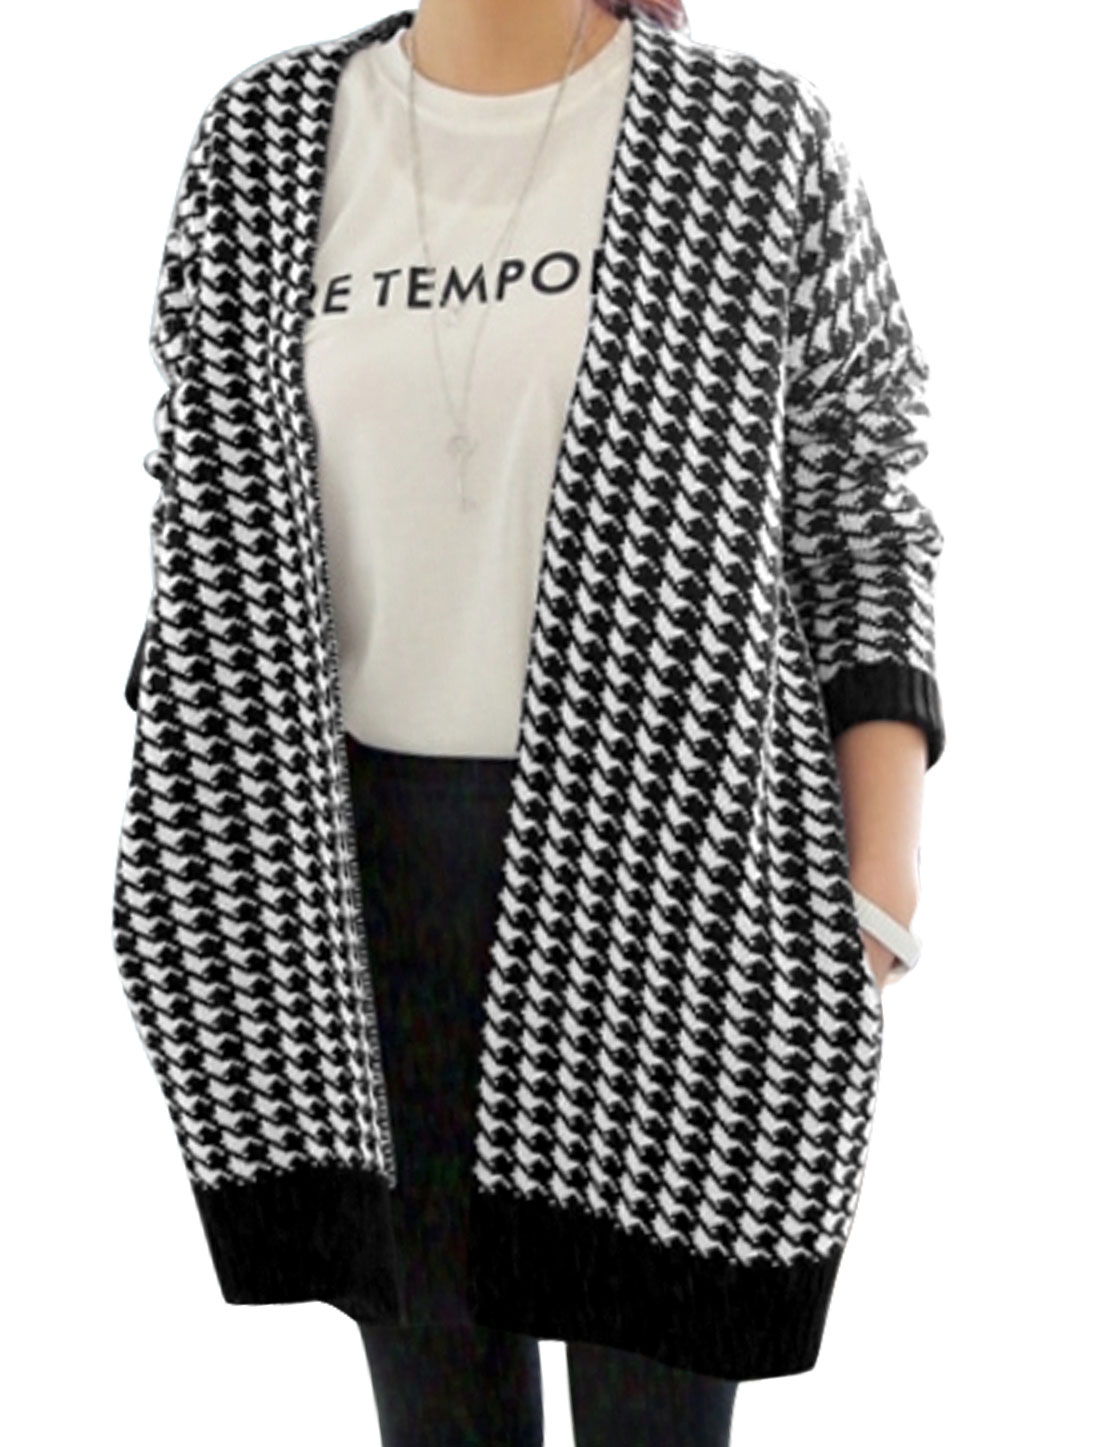 Ladies Black White Houndstooth Pattern Front Opening Sides Pockets Tunic Knit Cardigan XS